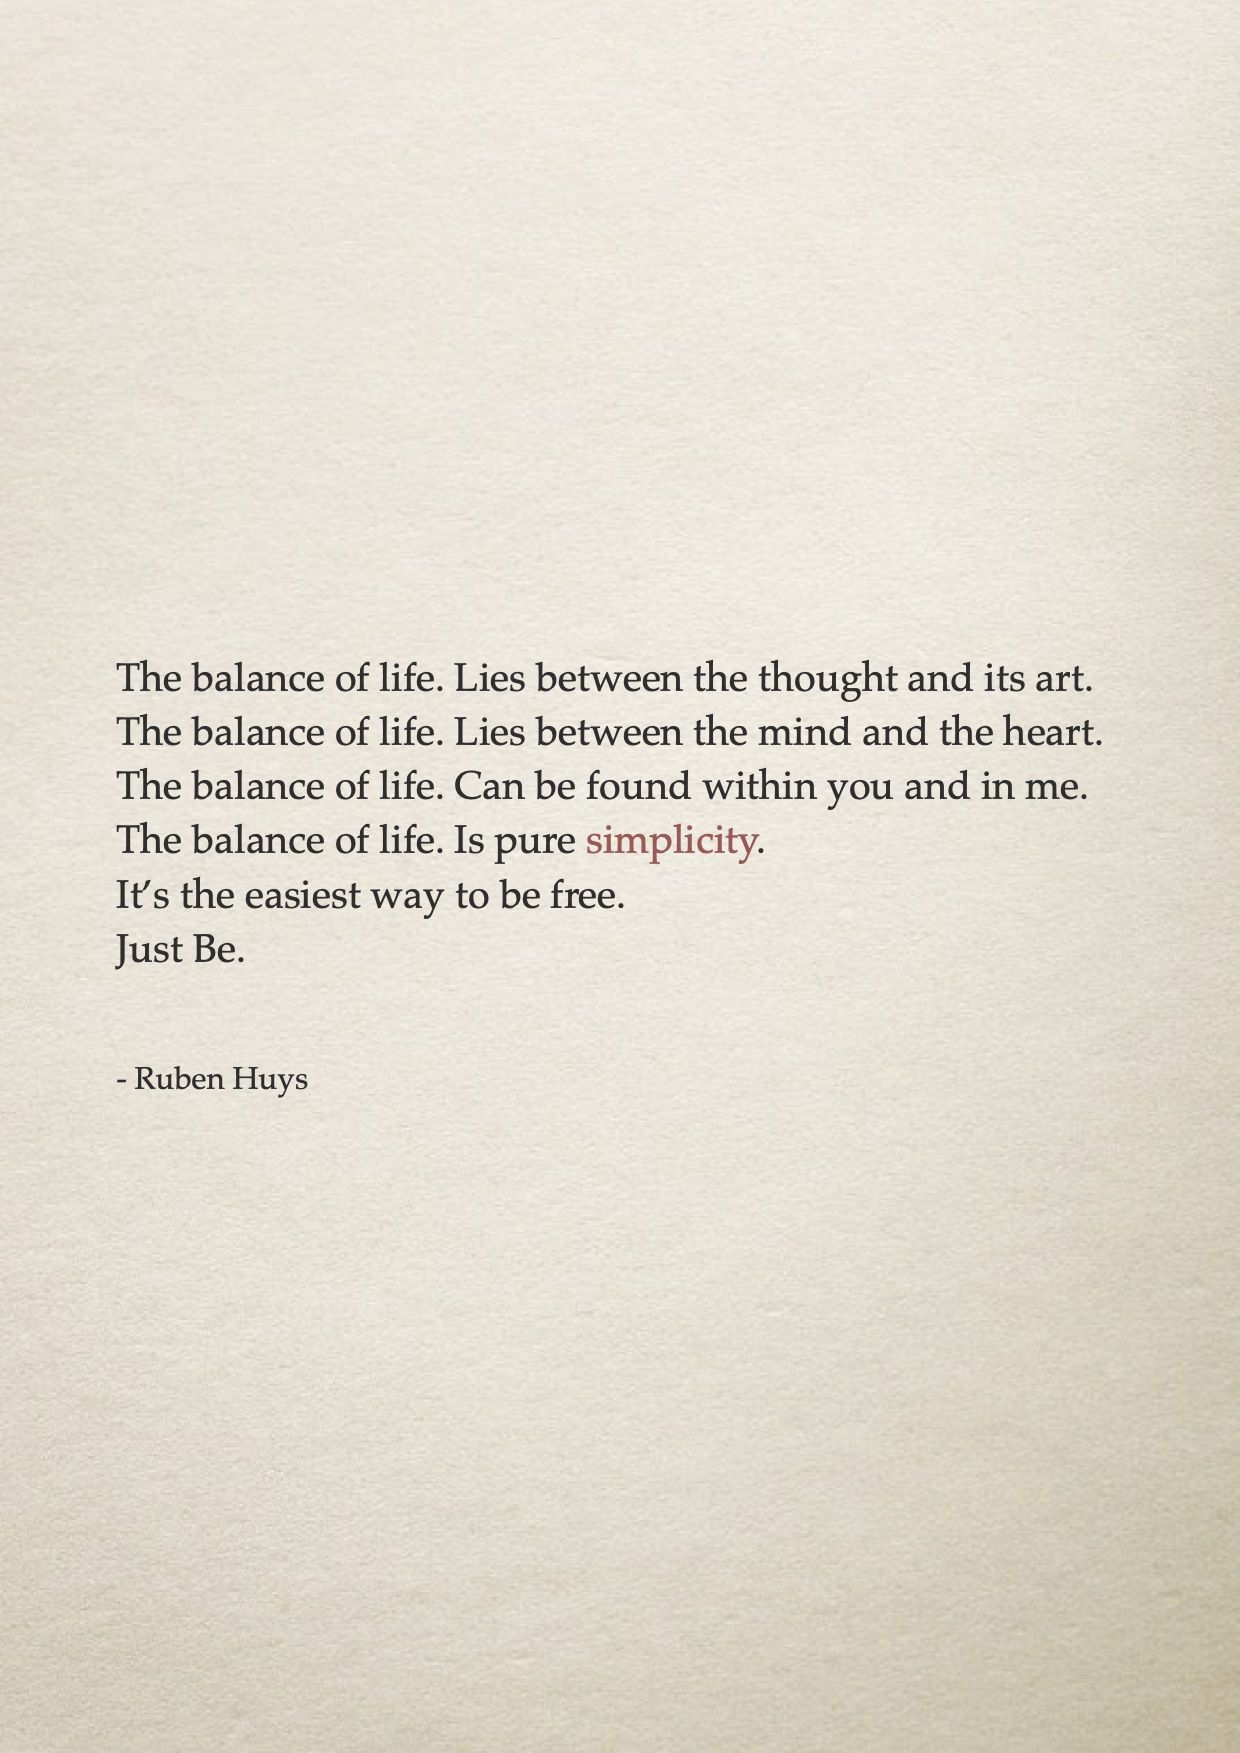 Find Your Balance And Be Free Freedom Balance Between Your Mind And Your Heart Be Simple Look Within Just Be In 2020